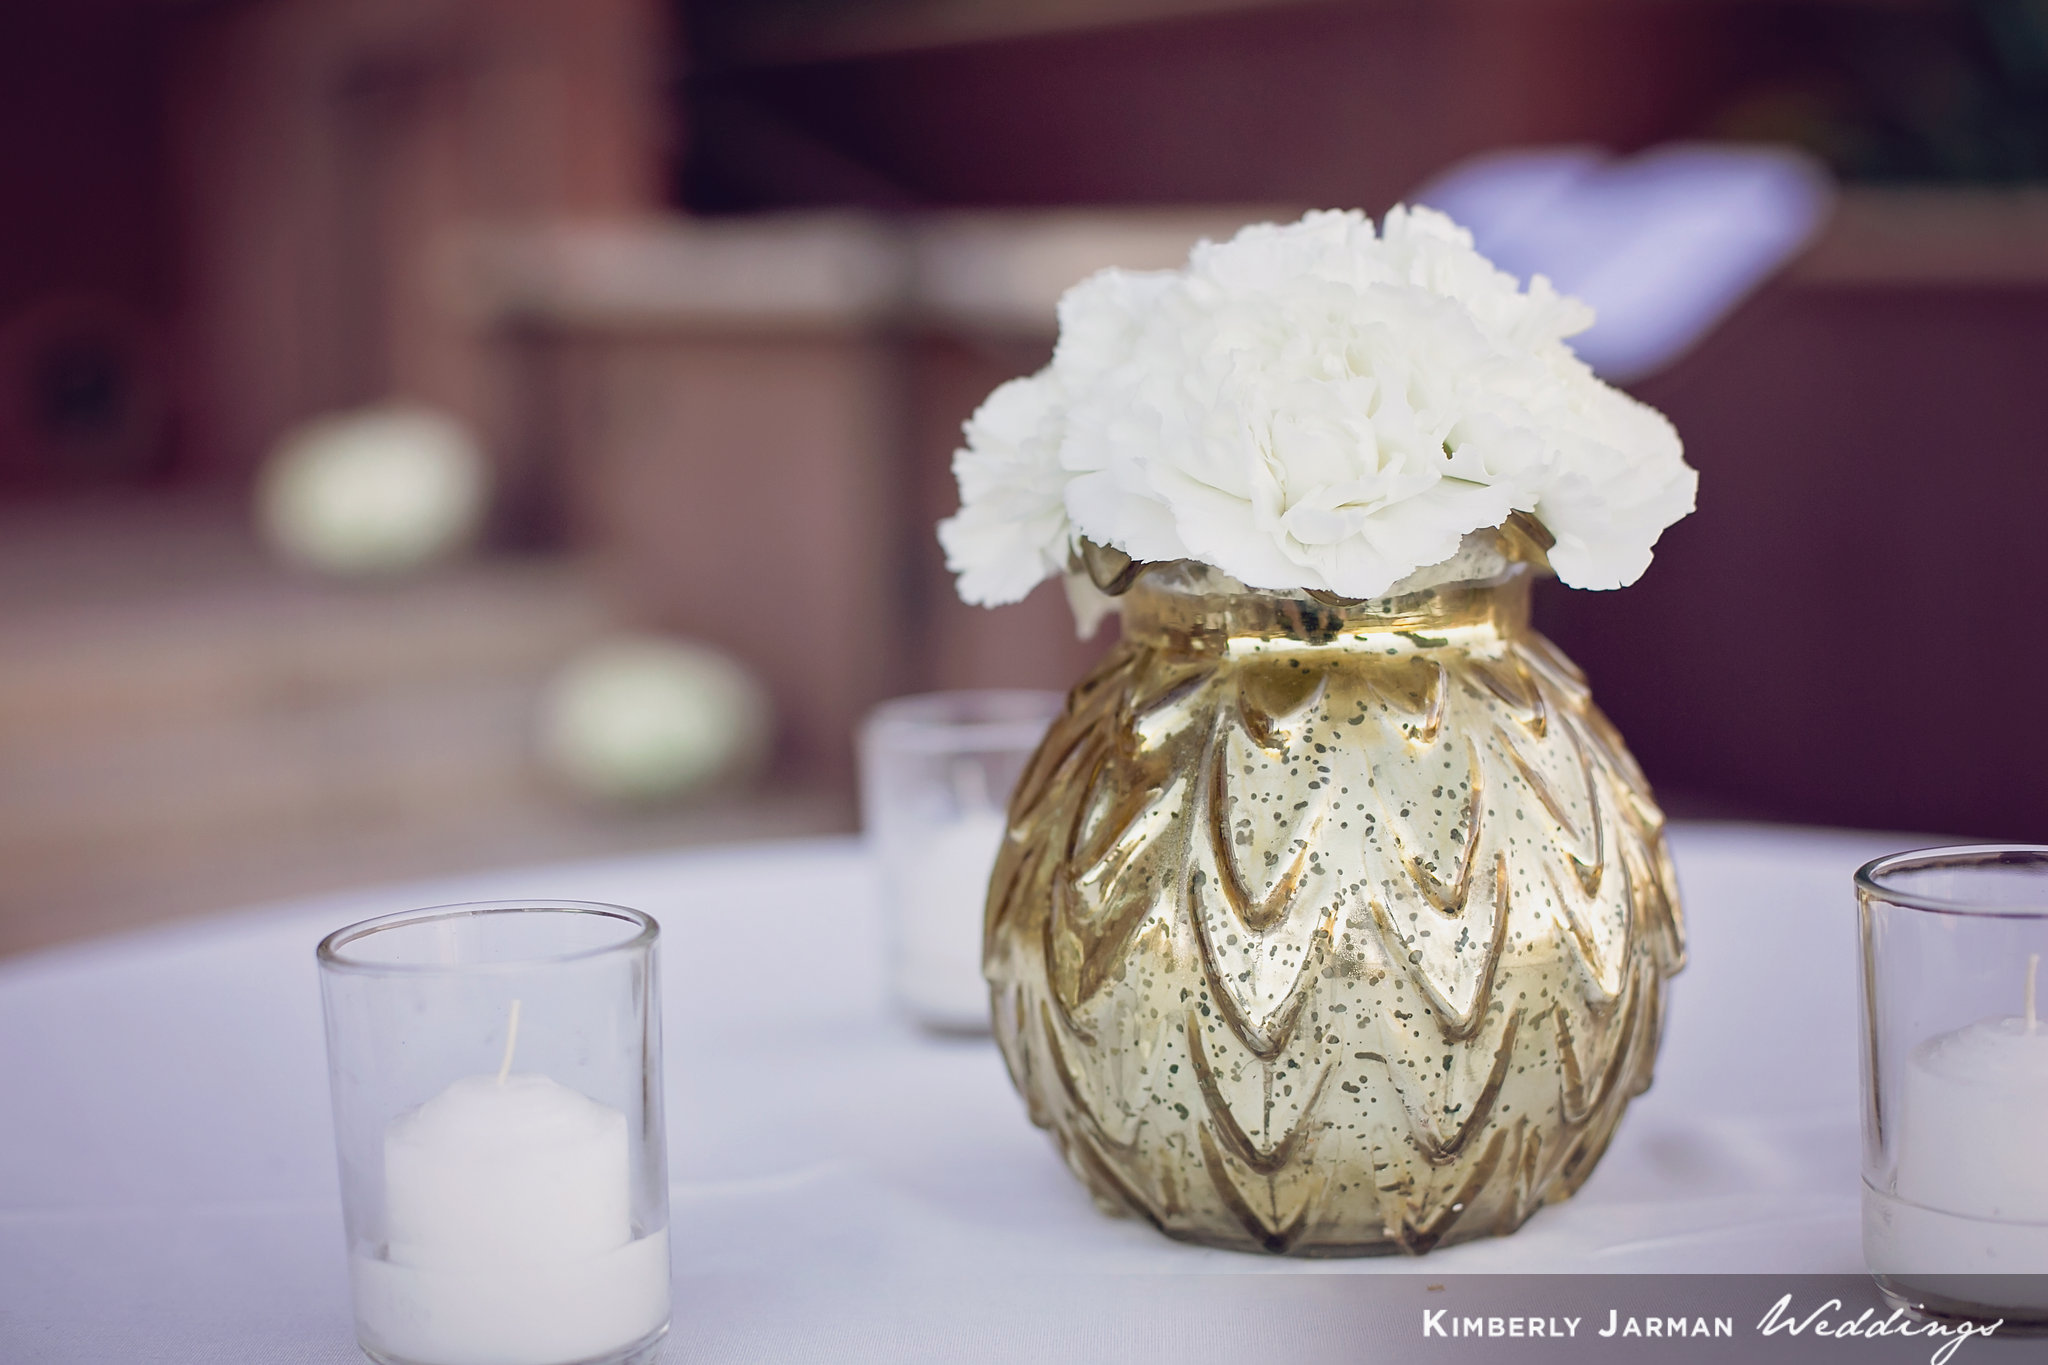 Classic, elegant wedding, white and gold wedding, white hydrangea bouquets, cocktail arrangements, white flowers